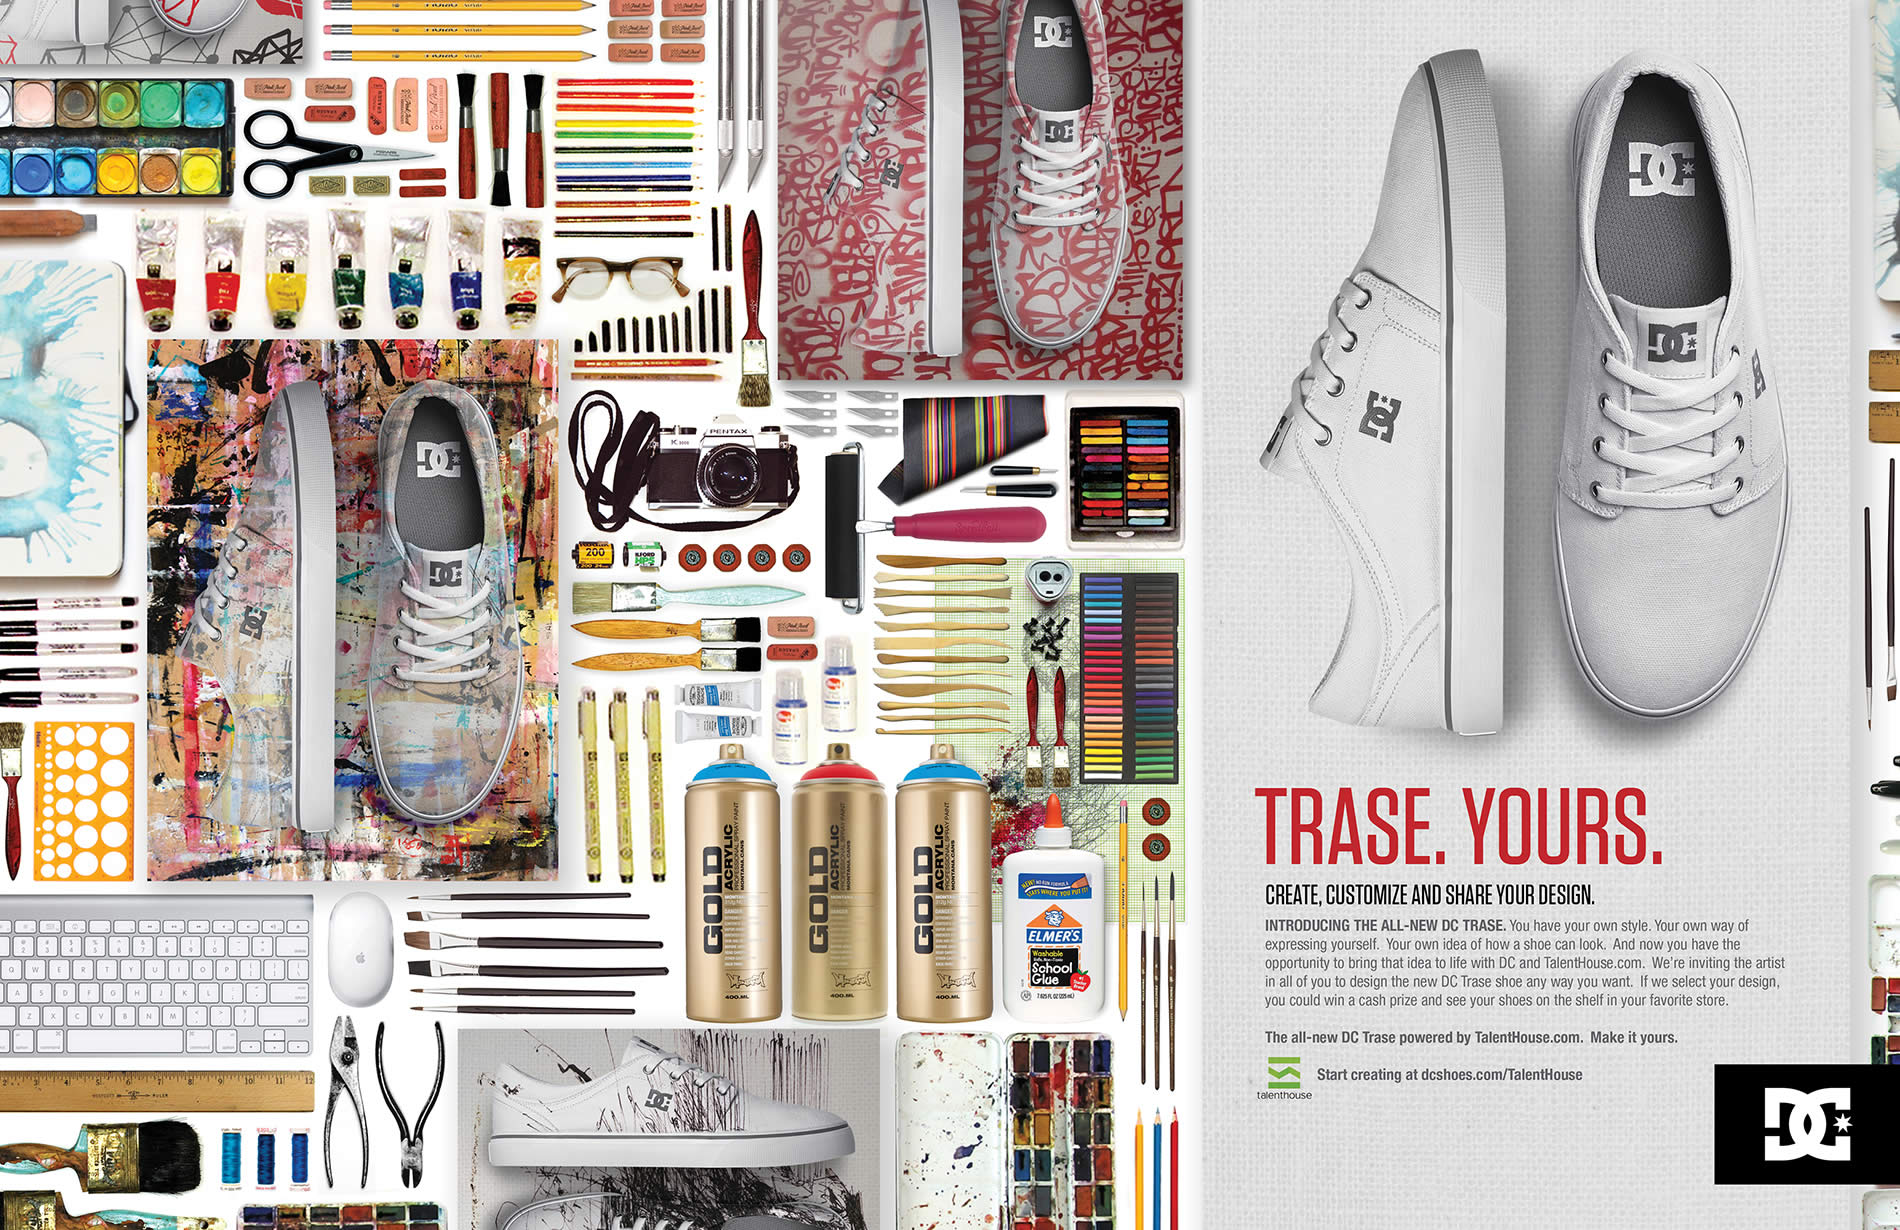 design the trase shoe for dc shoes - a talenthouse competition dce9cb2e762af